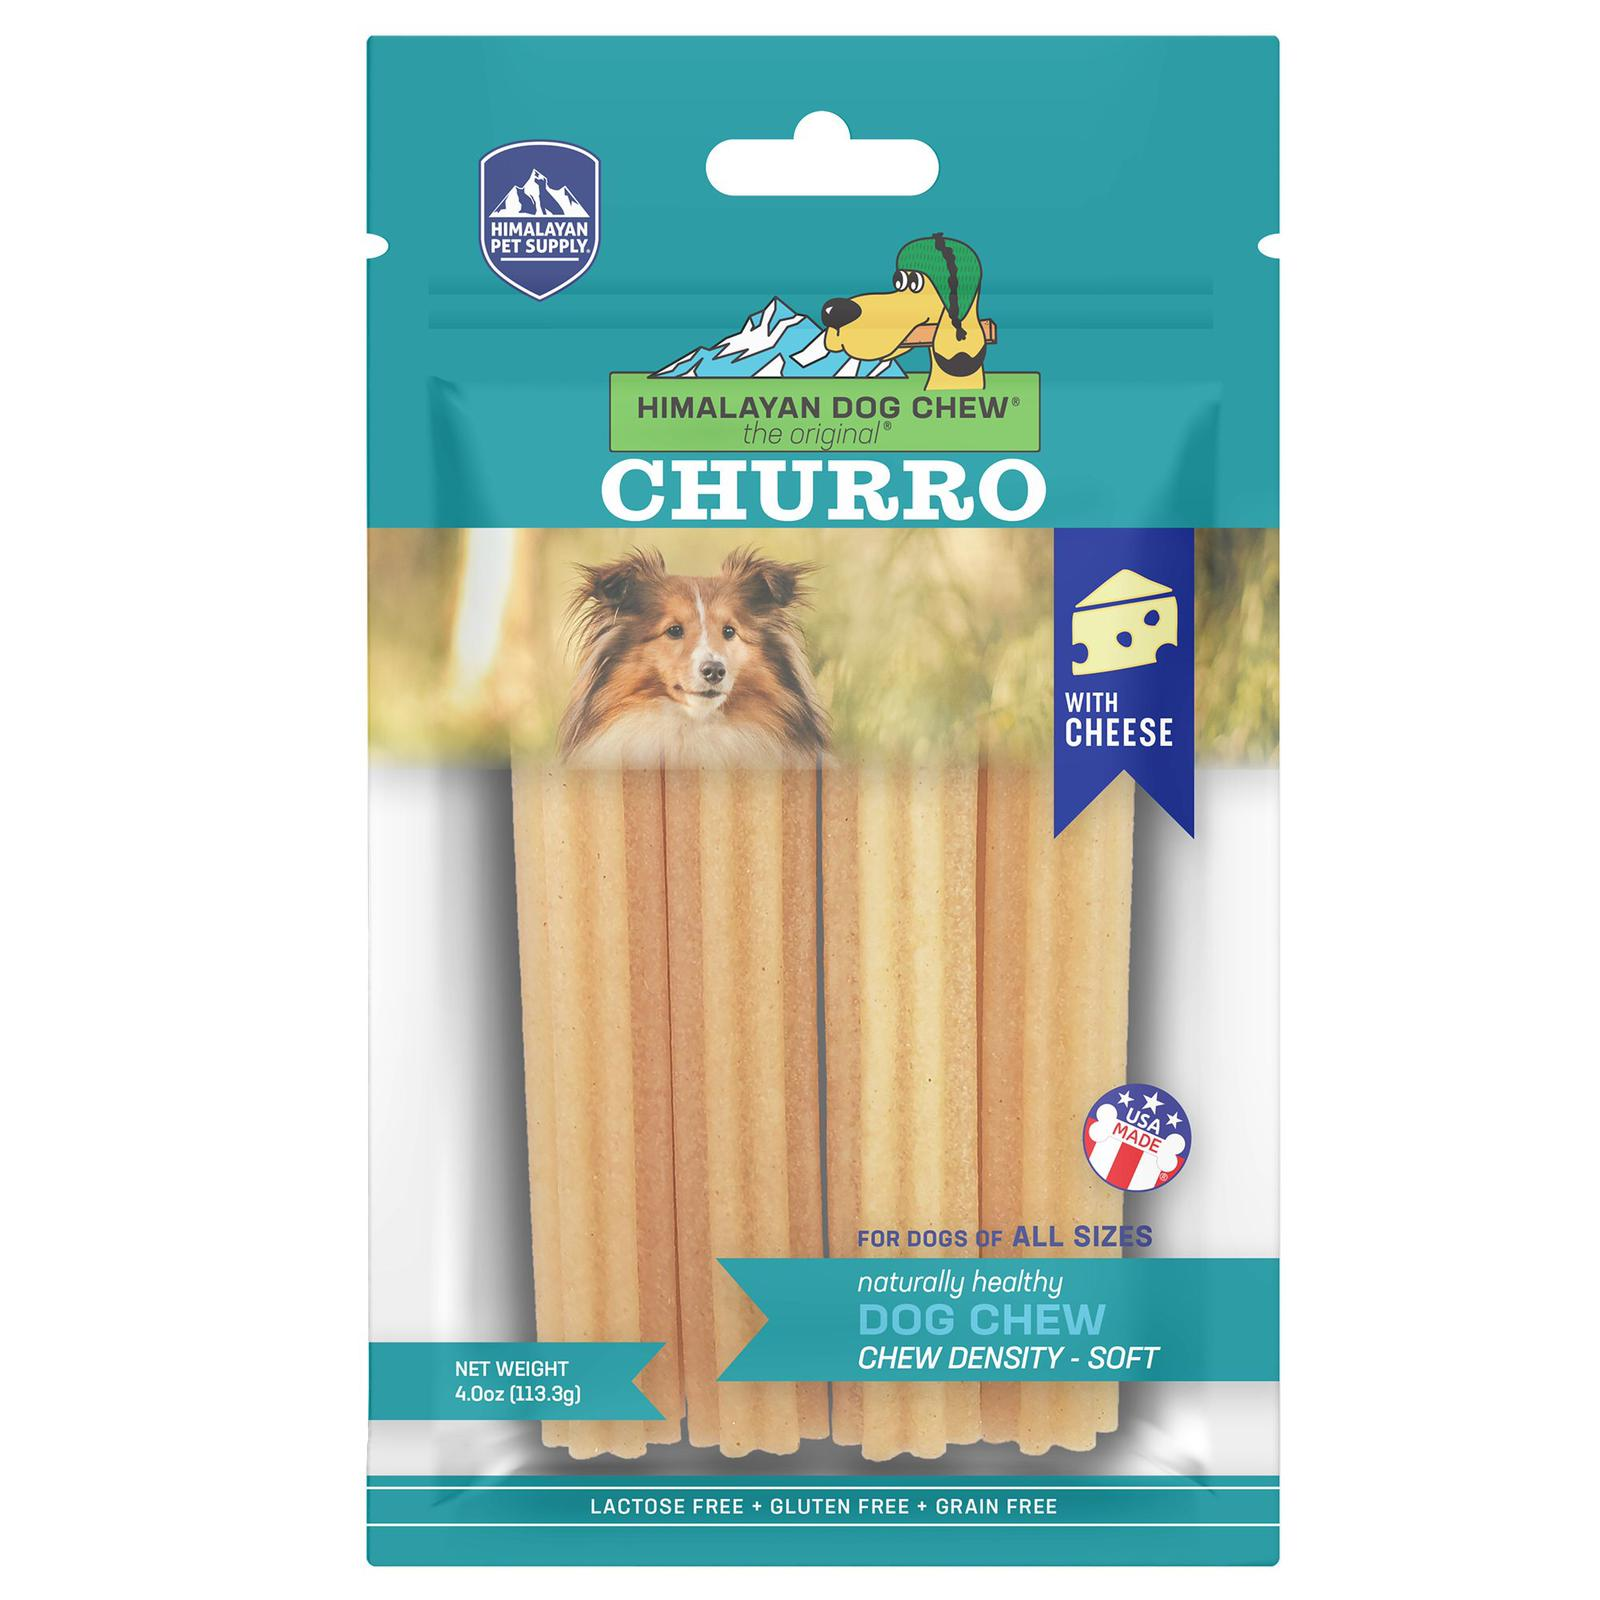 Churro Cheese Dog Chew (Soft Chew)